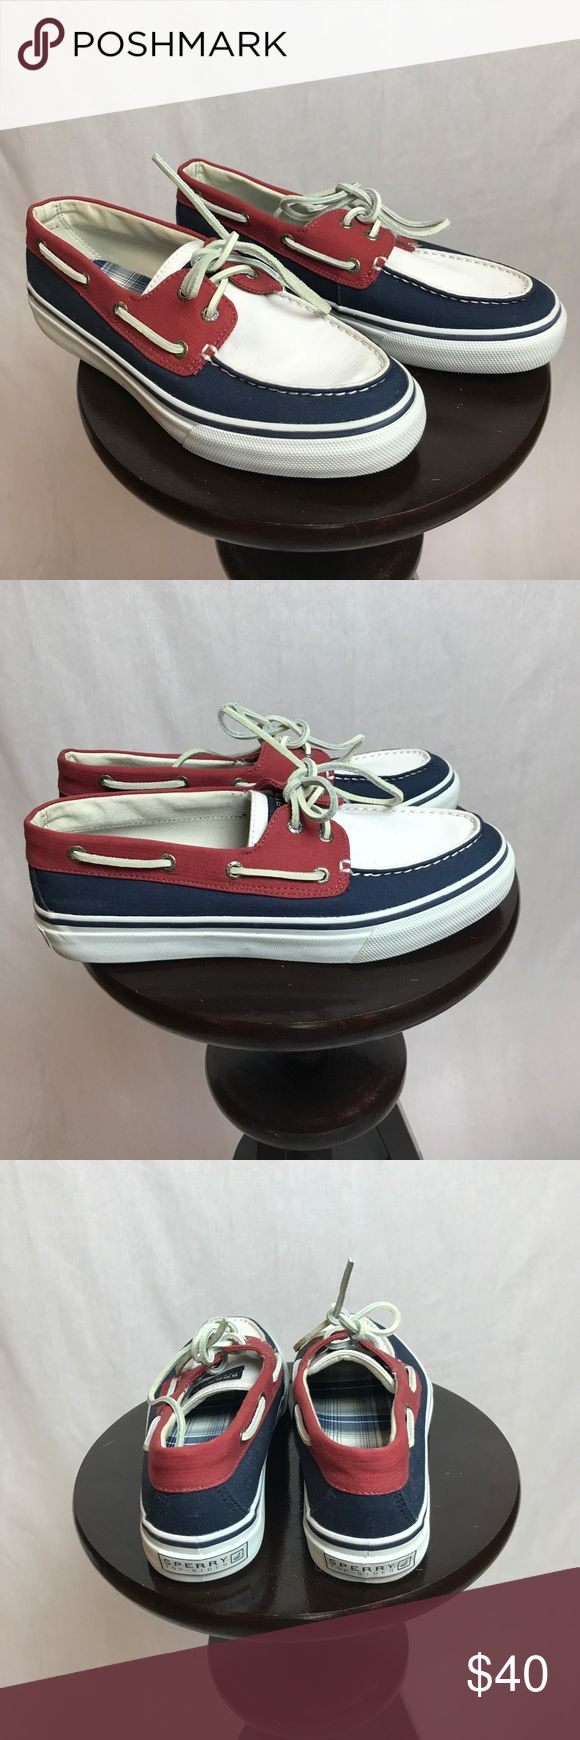 AUTH Pre-owned Male Sperry TopSider red,white,blue Pre-owned/worn Male Sperry topsider boat shoes! Red,White, and Blue! Size 9! No box! Please look at photos carefully! All sales final, no refunds, no returns. Sperry Top-Sider Shoes Boat Shoes